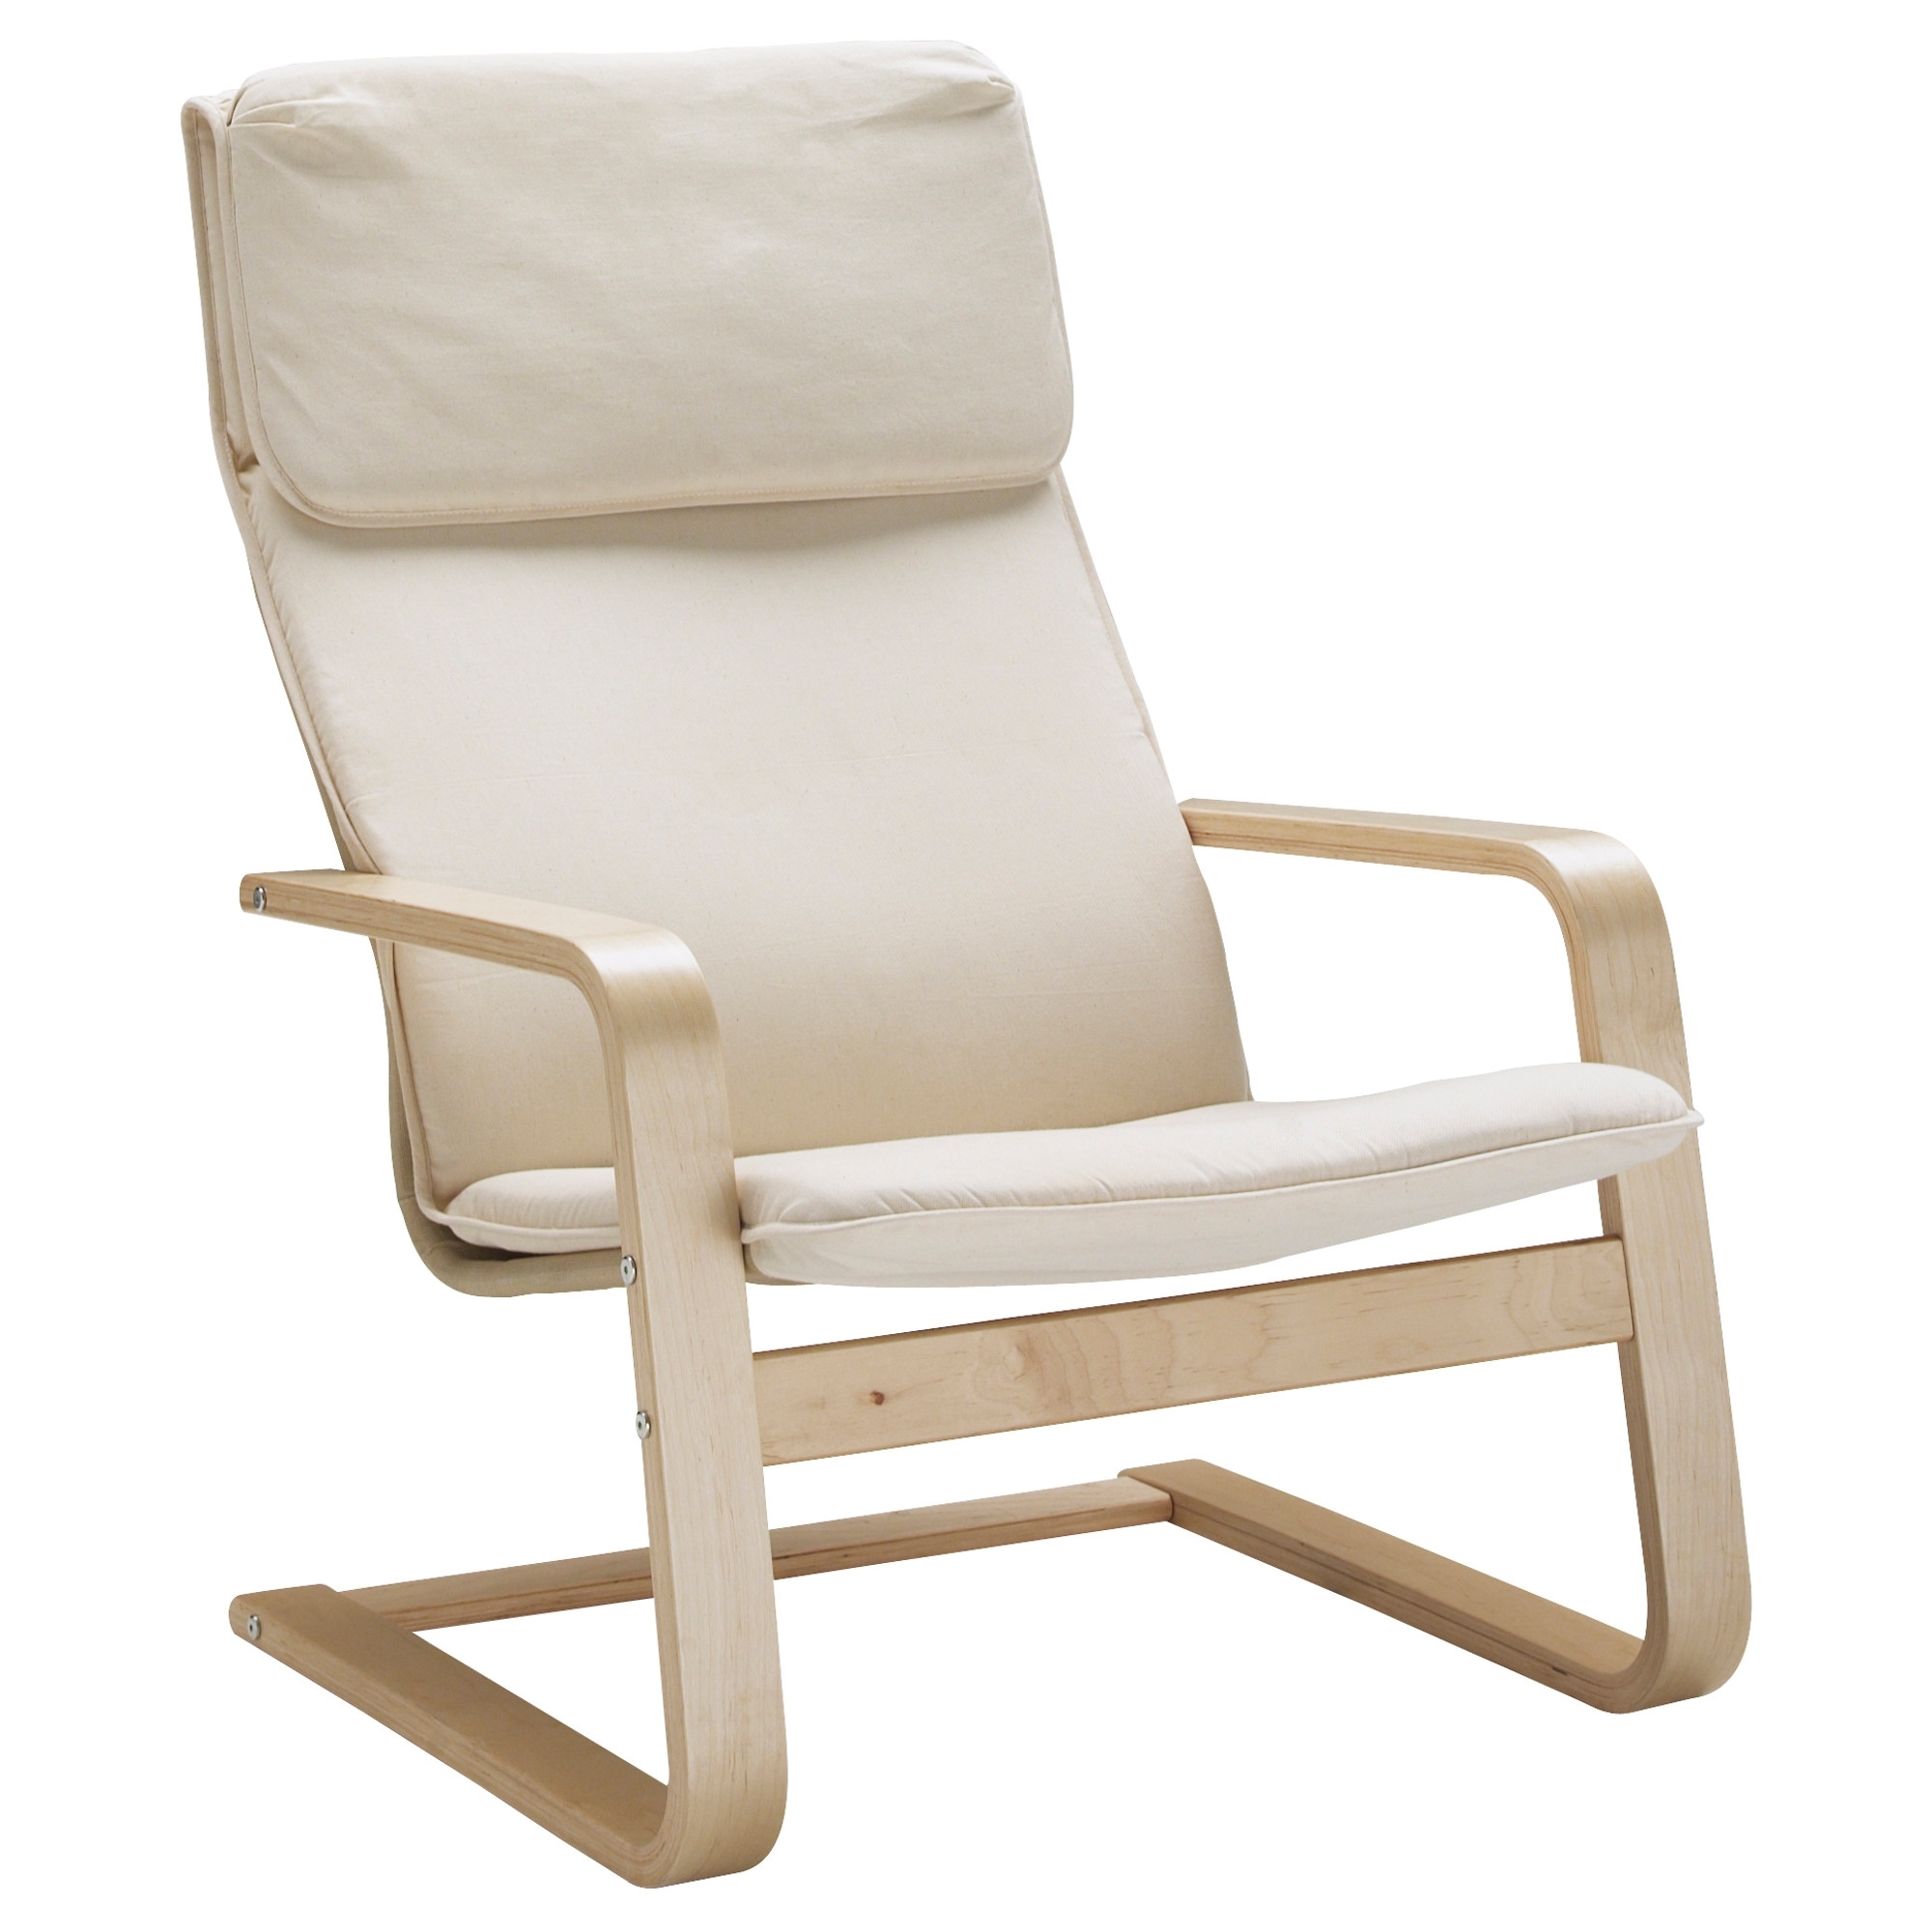 Ikea Outdoor Chaise Lounge Chairs Within Widely Used Pello Armchair – Ikea (Gallery 14 of 15)